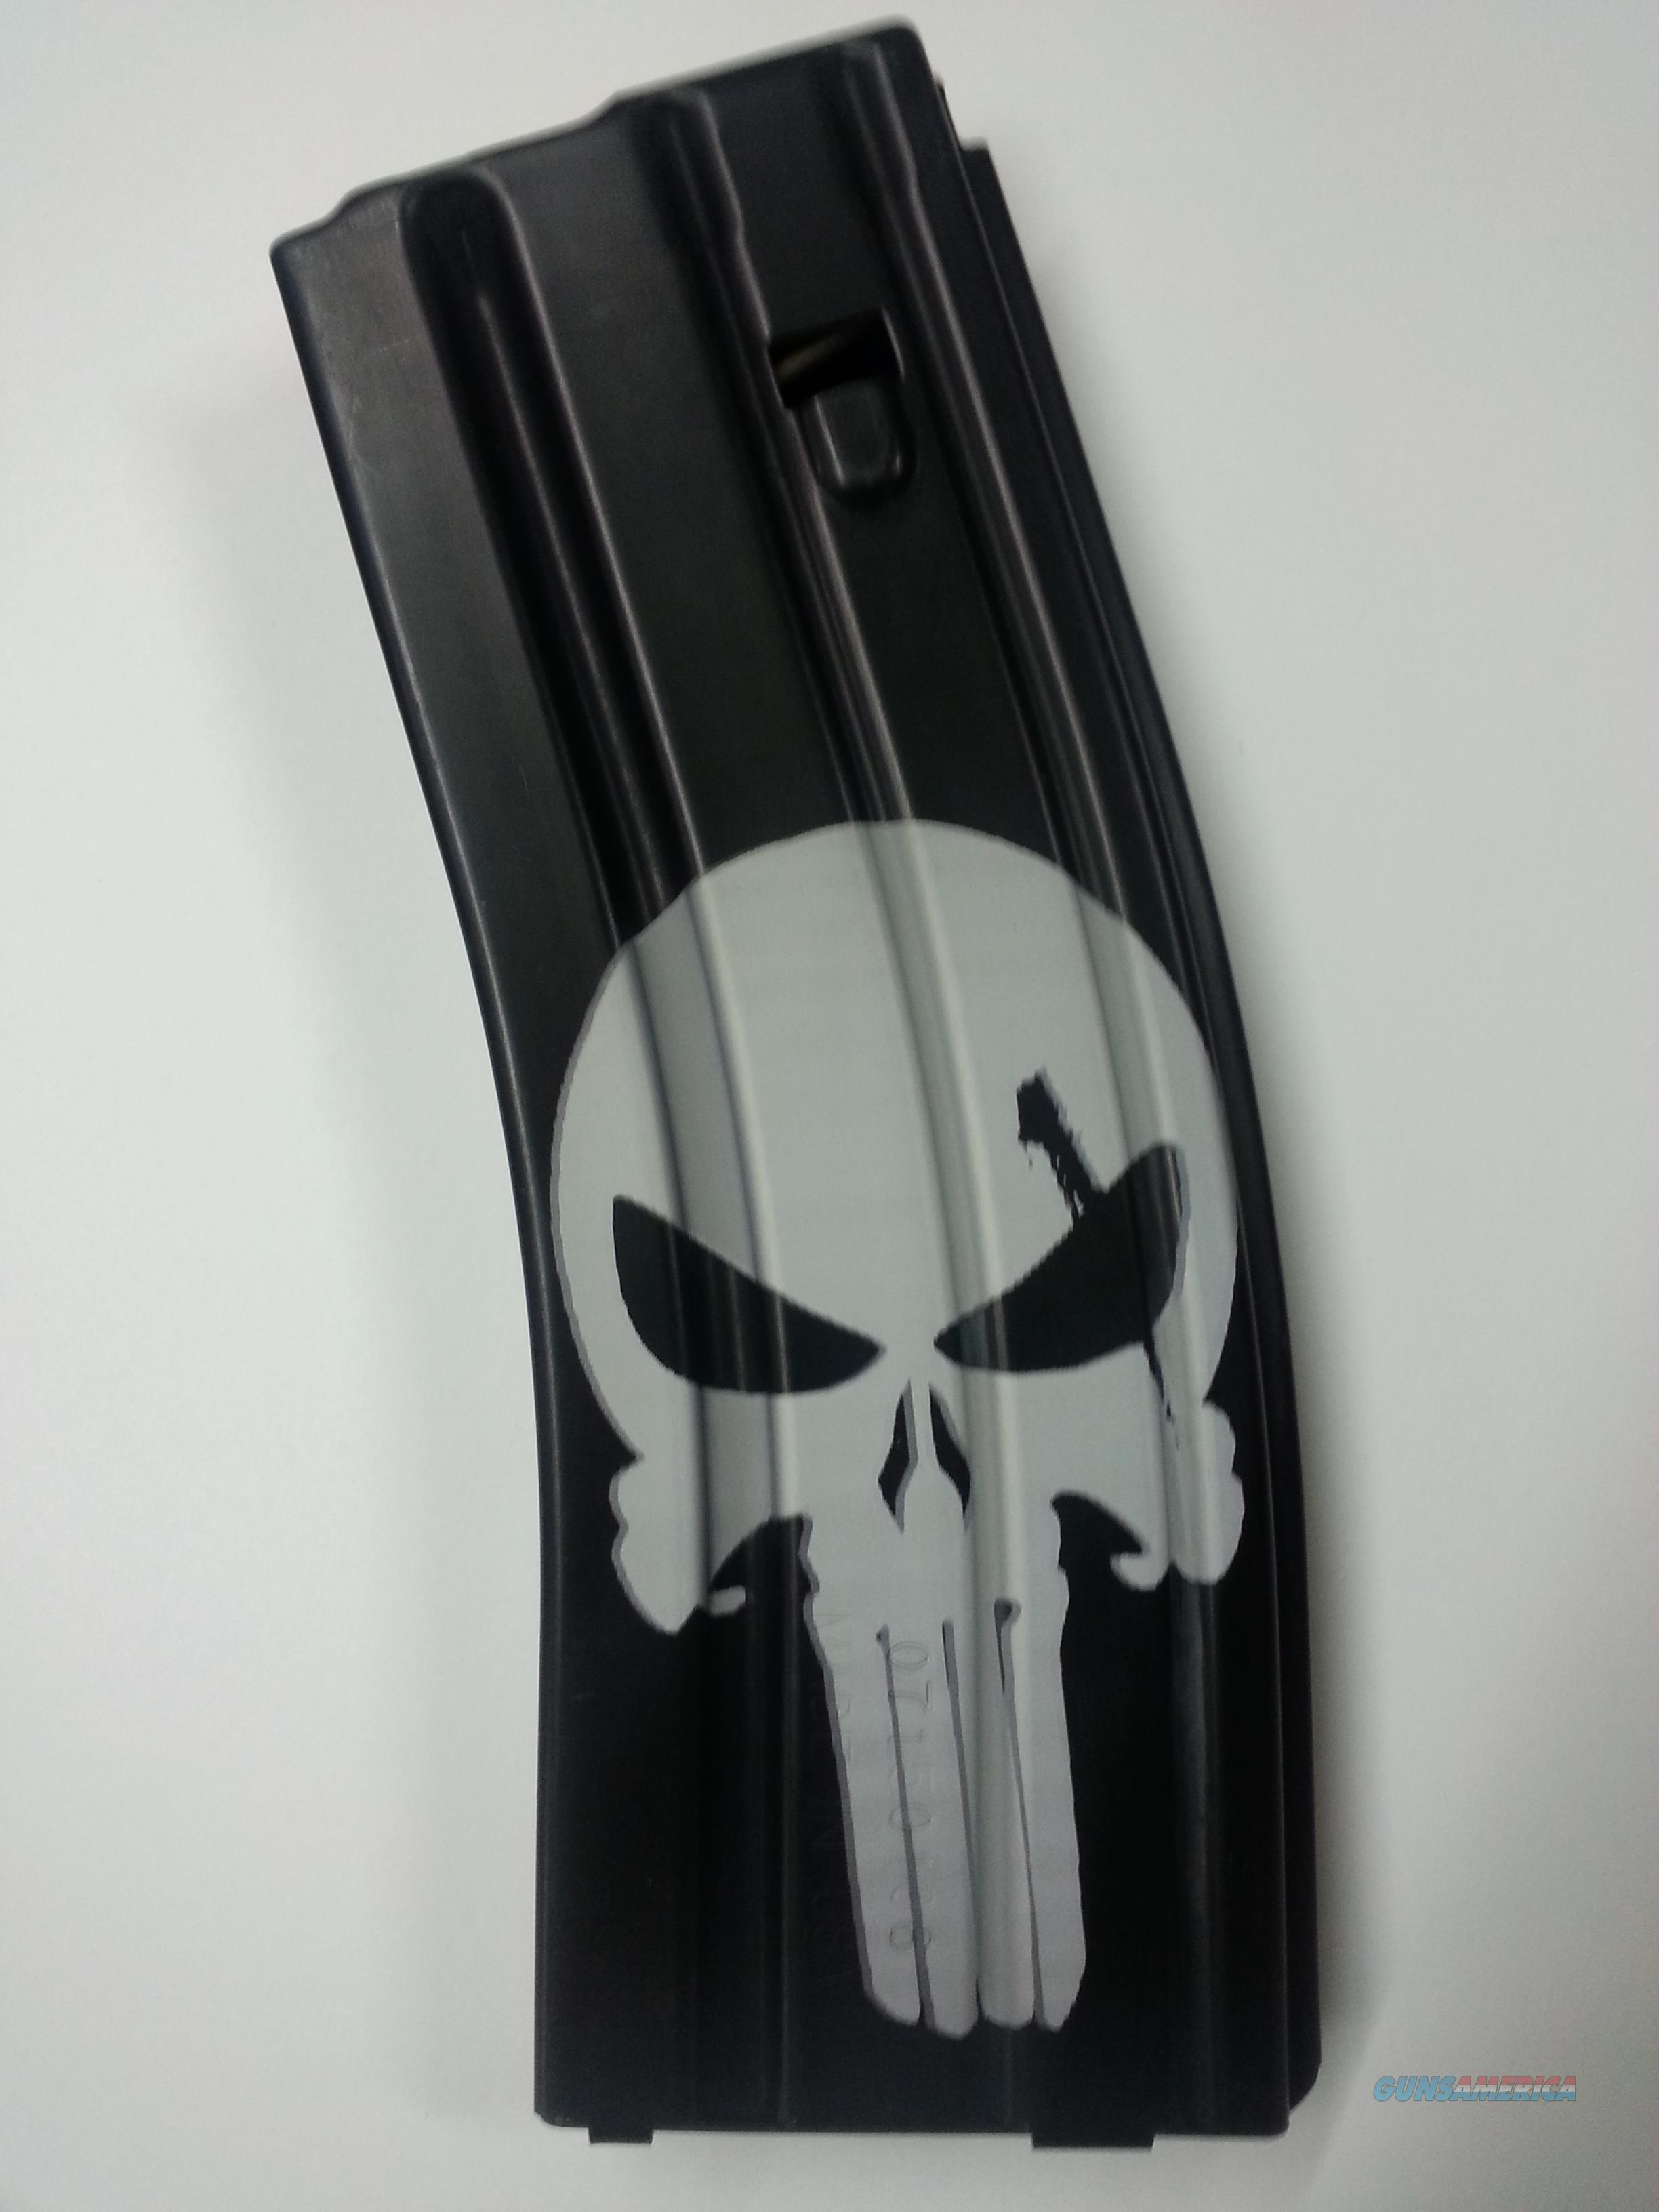 Punisher Laser Etched 30 round 5.56 .223 Aluminum Magazine  Non-Guns > Magazines & Clips > Rifle Magazines > AR-15 Type